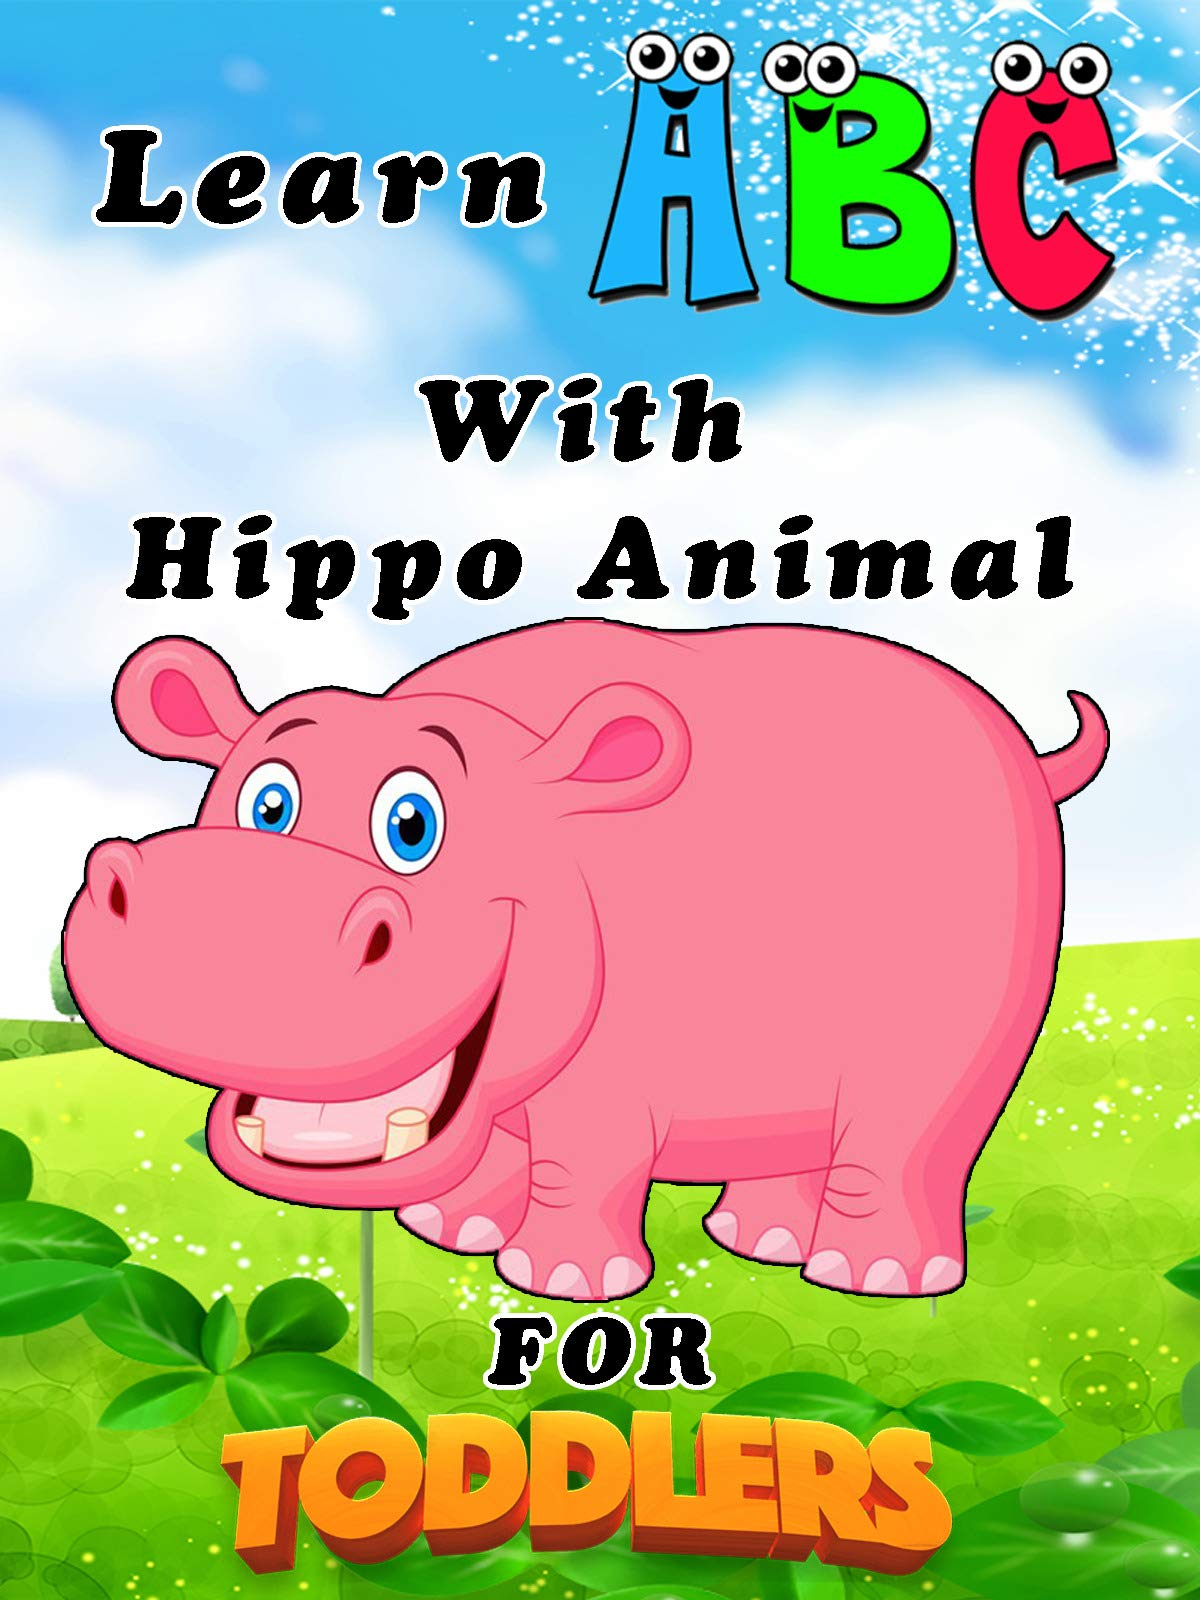 Learn ABC With Hippo Animal For Toddlers on Amazon Prime Video UK